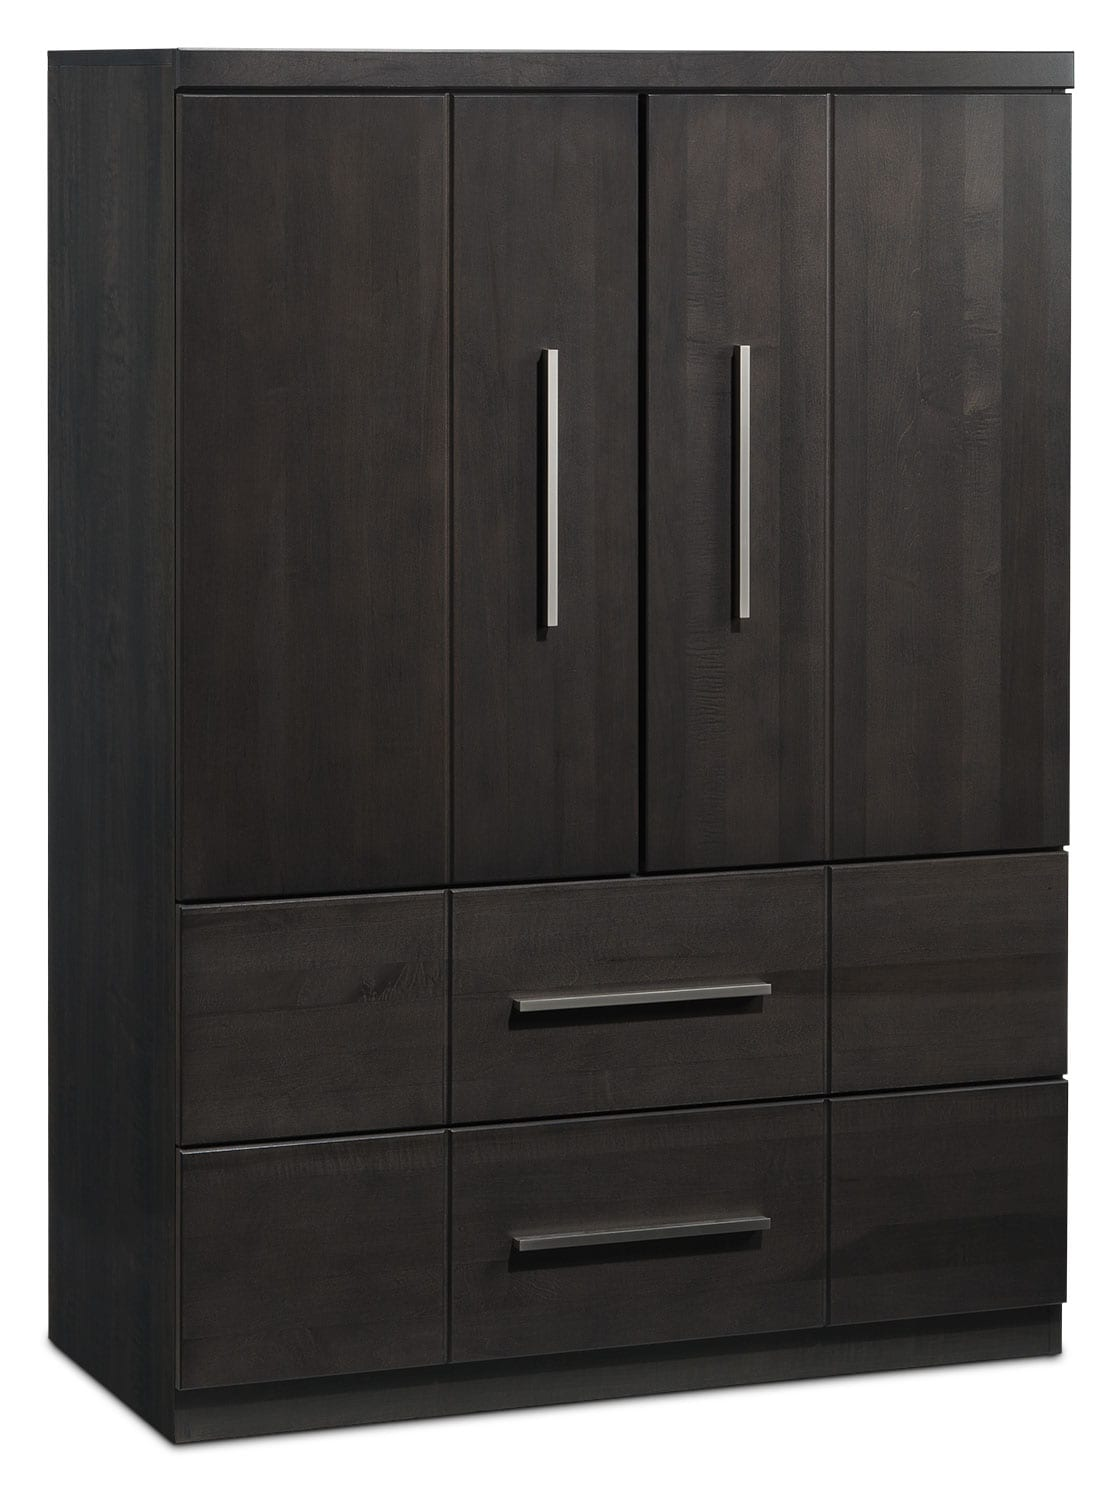 Seville Armoire - Charcoal